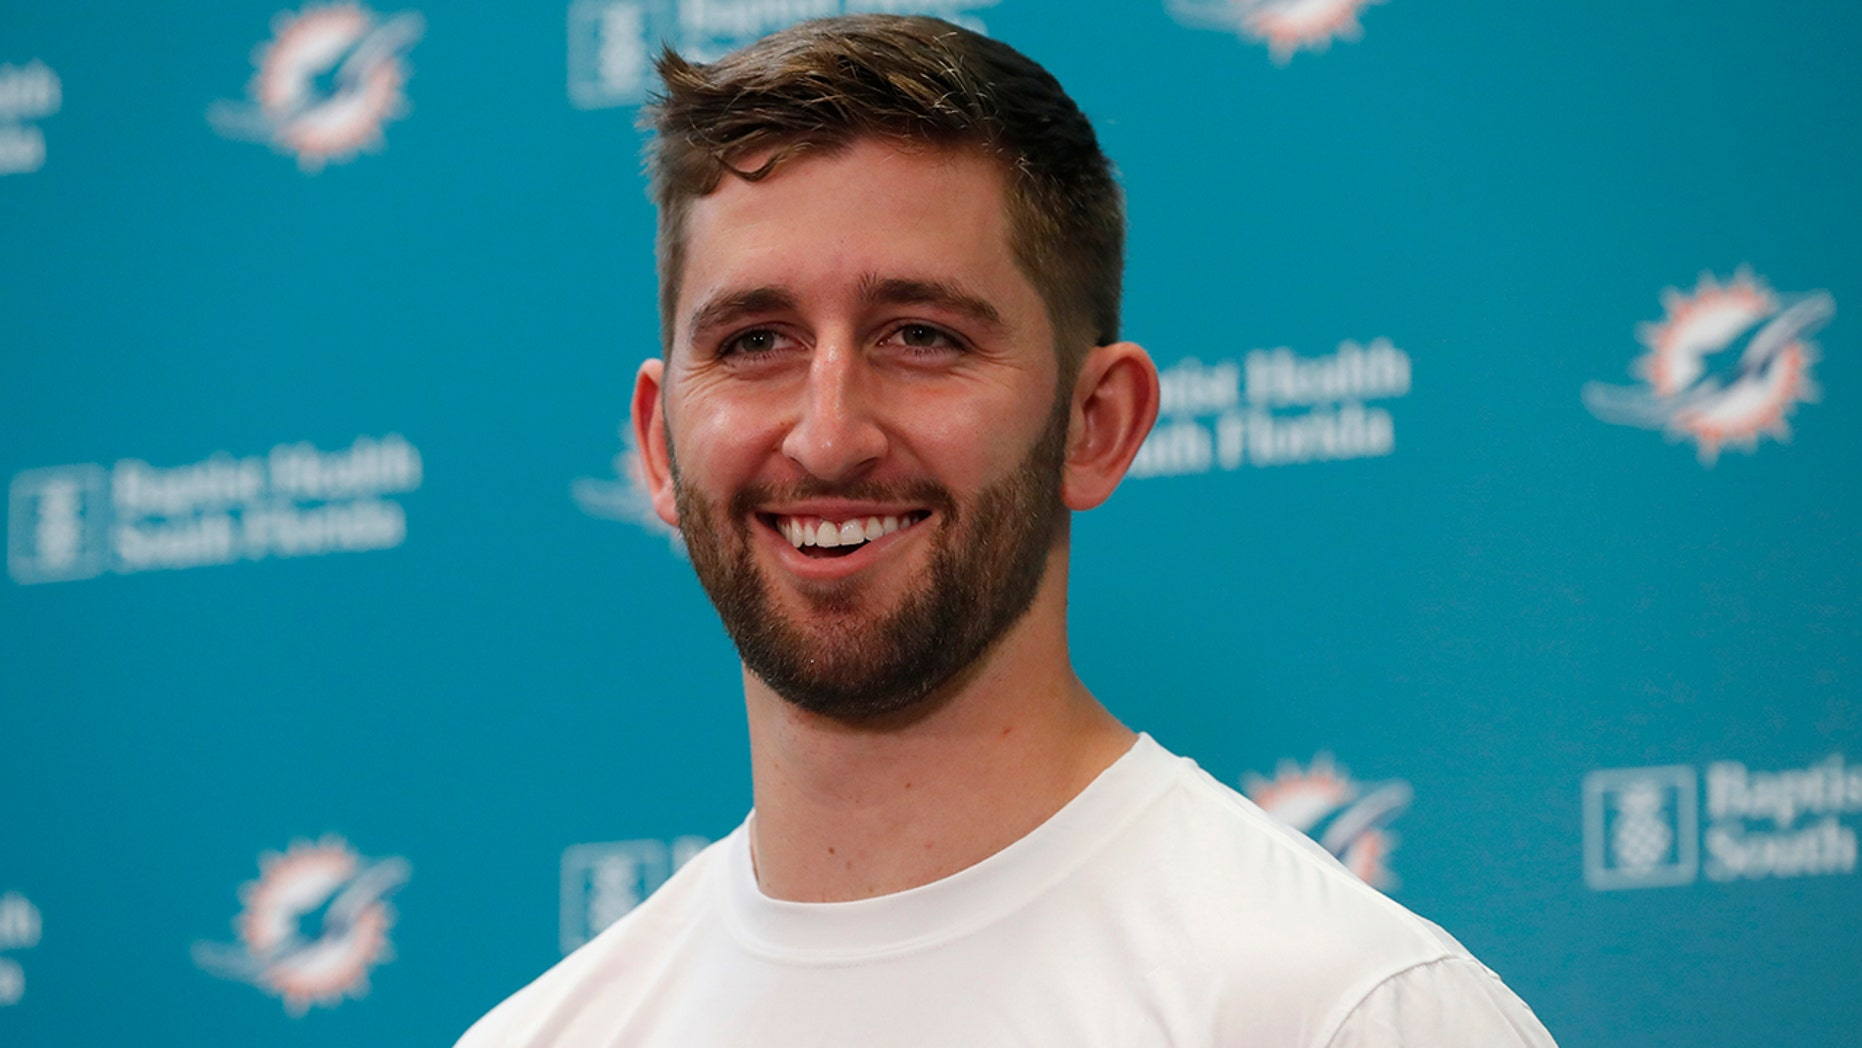 Miami Dolphins NFL football quarterback Josh Rosen smiles as he speaks during a news conference, Monday, April 29, 2019, at the Dolphins training facility in Davie, Fla. The Dolphins traded a 2019 second-round draft pick and a 2020 fifth-round selection to Arizona for Rosen. (AP Photo/Wilfredo Lee)